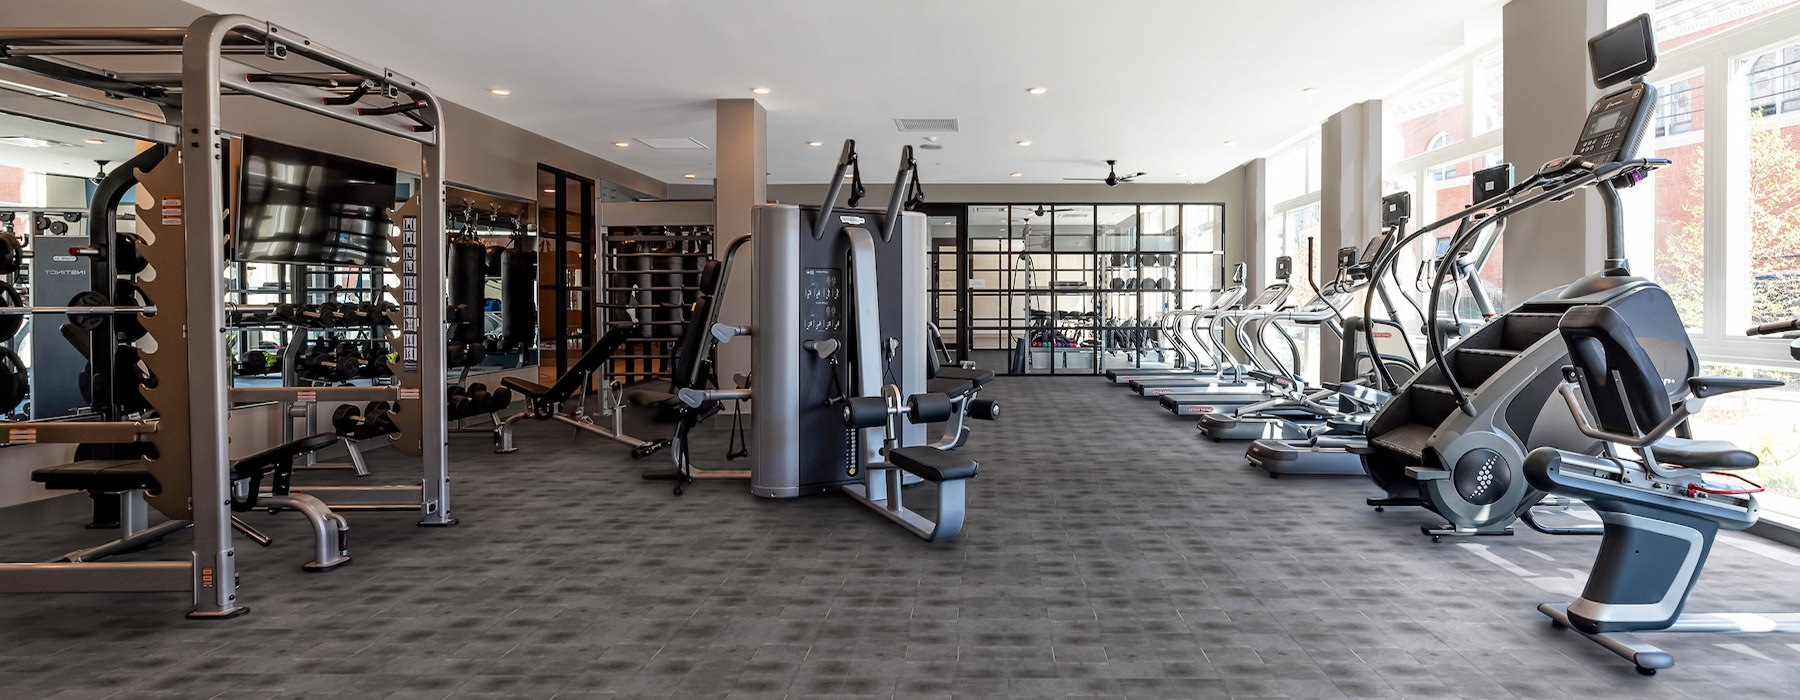 Spacious well lit gym with large windows